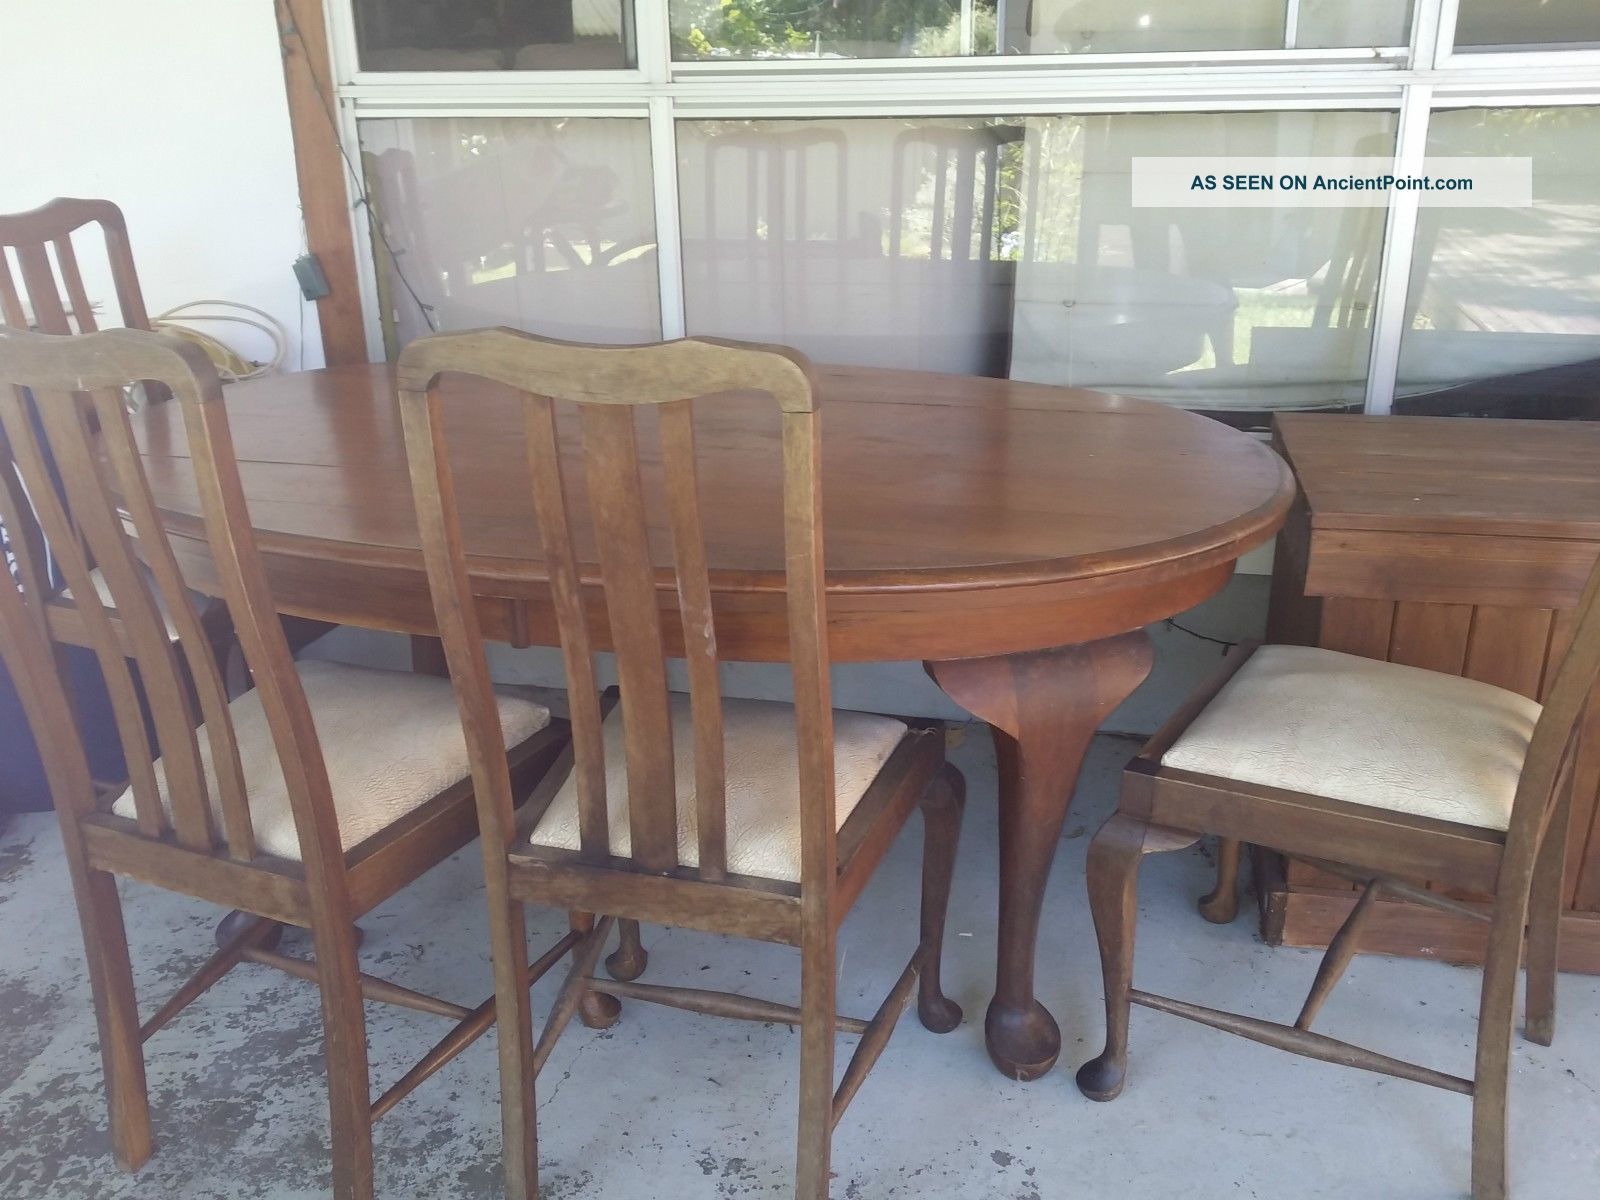 Queen Anne Dining Table And 4 Chairs 1900-1950 photo